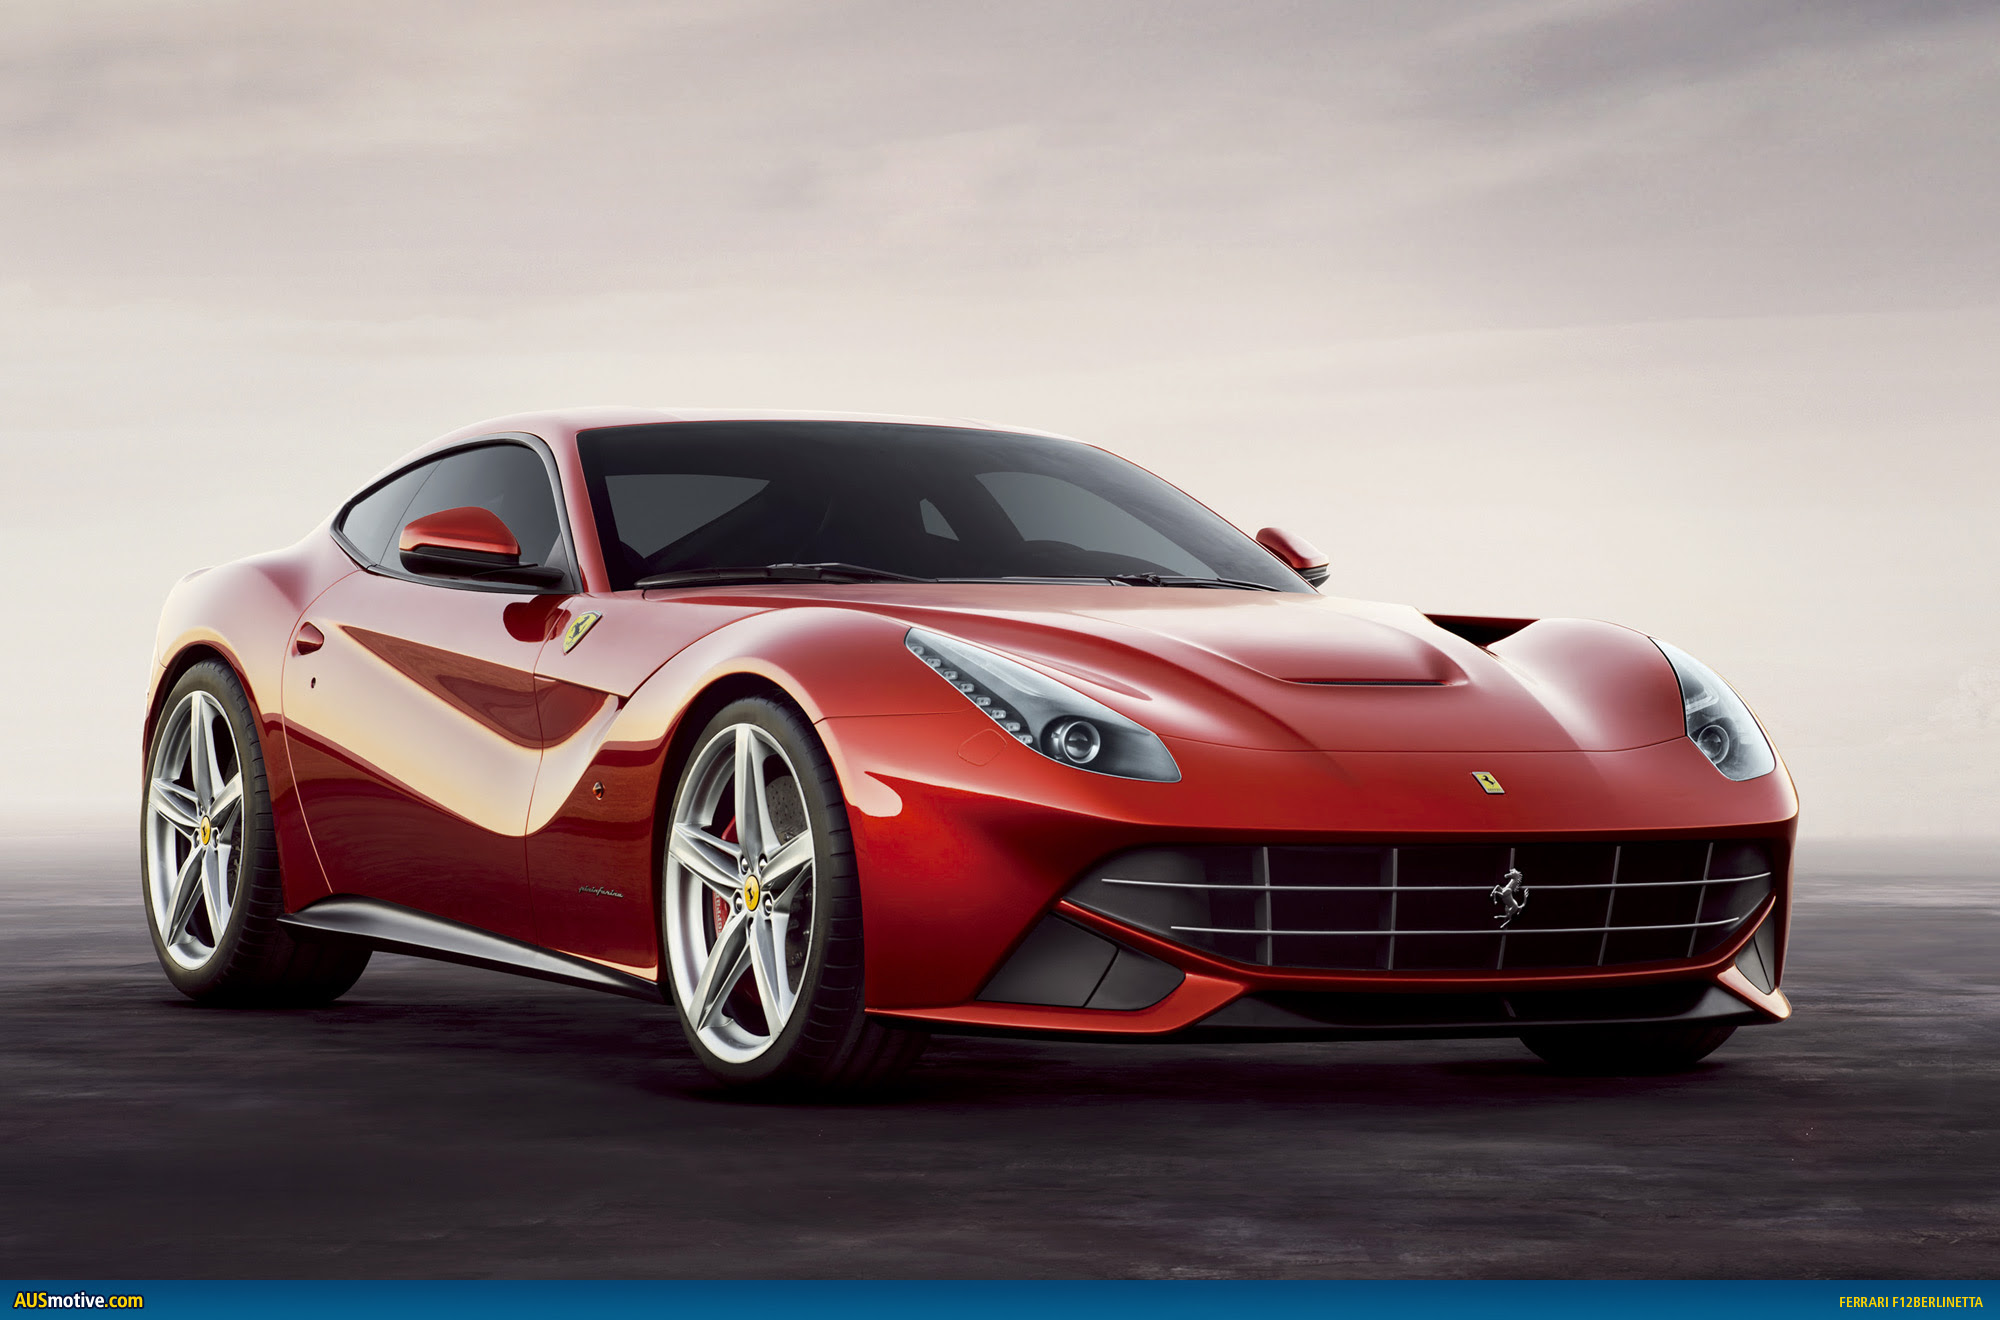 AUSmotive.com \u00bb Ferrari F12 berlinetta revealed